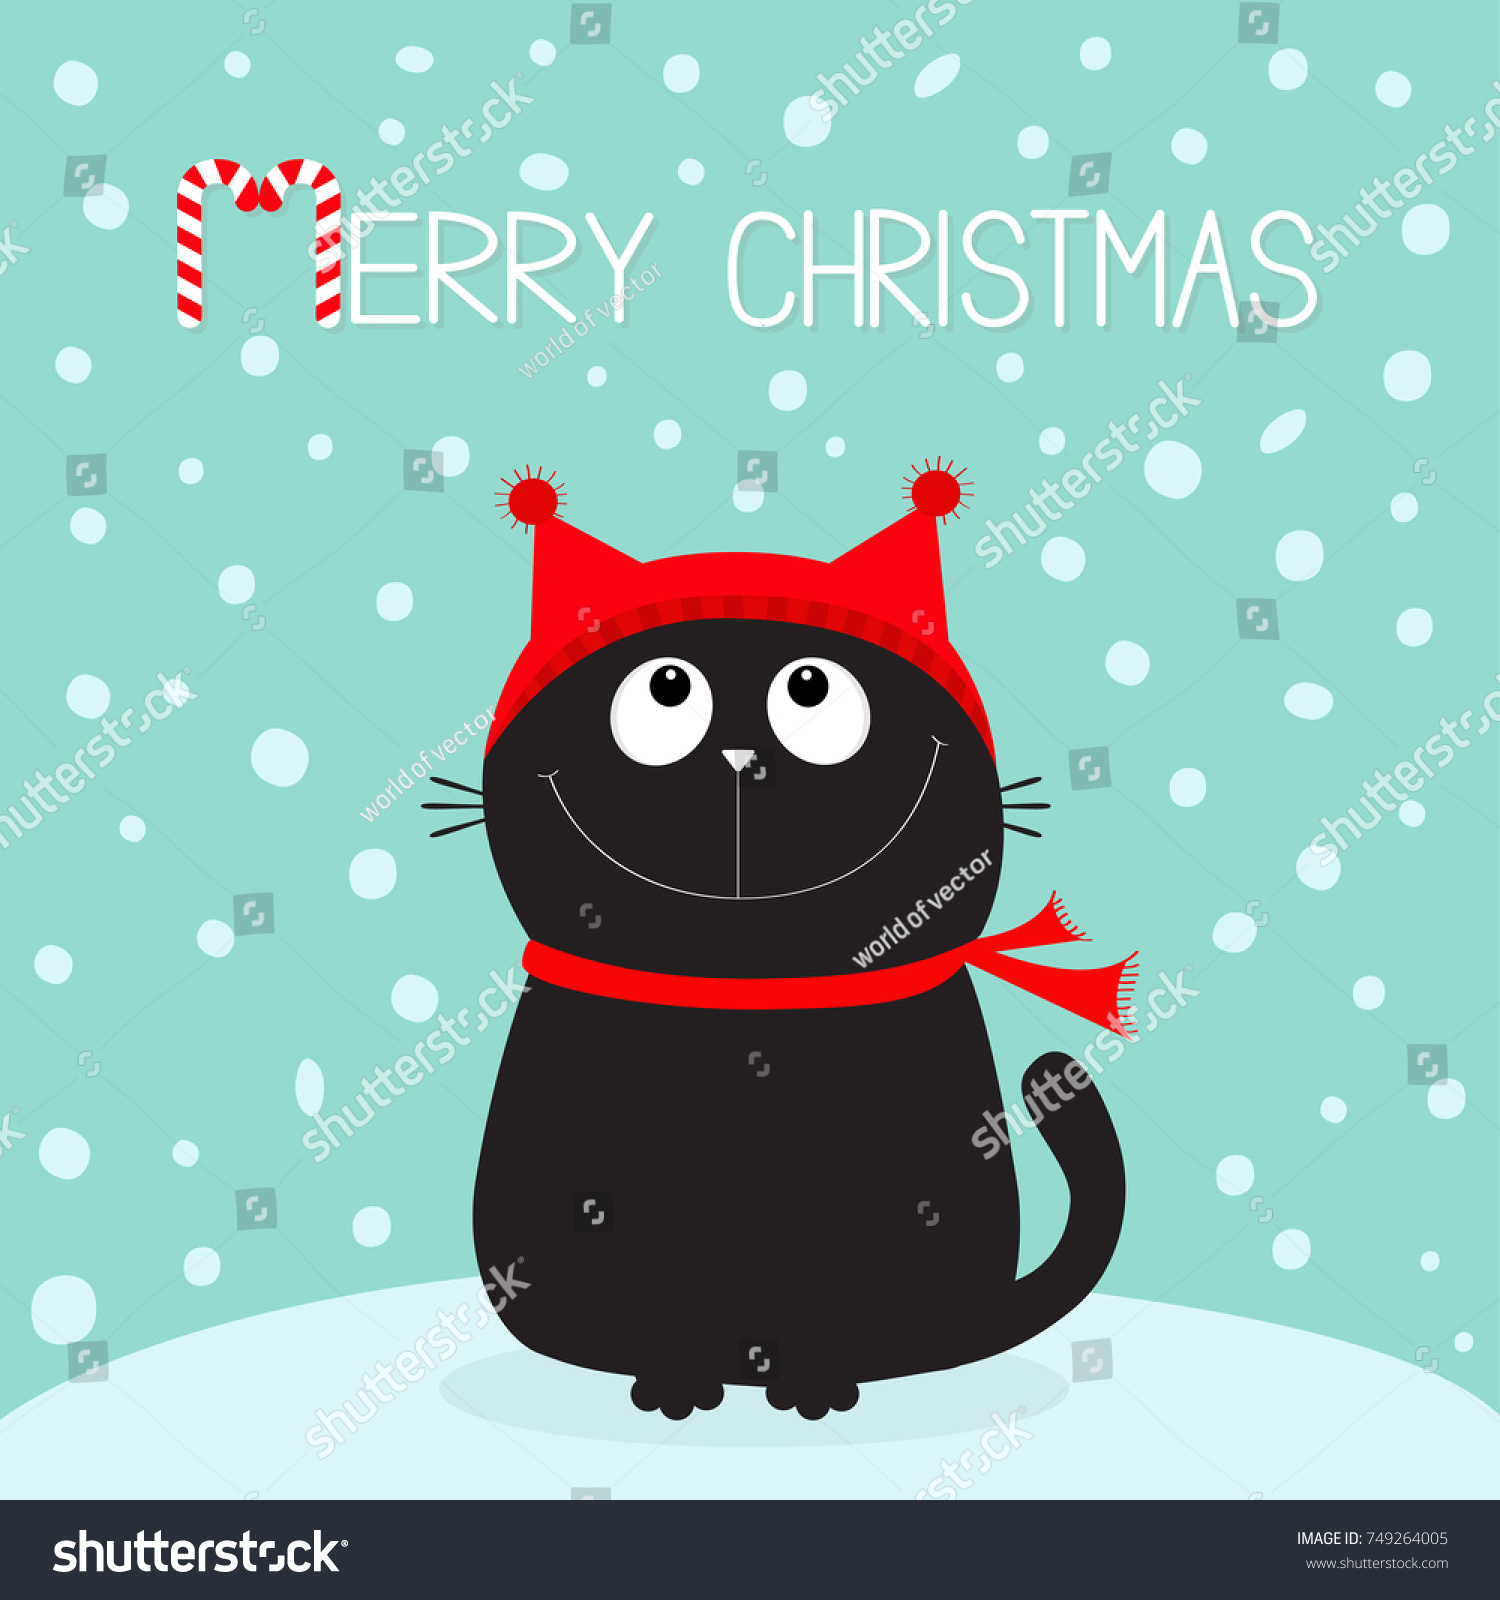 merry christmas candy cane text black cat kitten head face looking up kitty sitting - Merry Christmas Cat